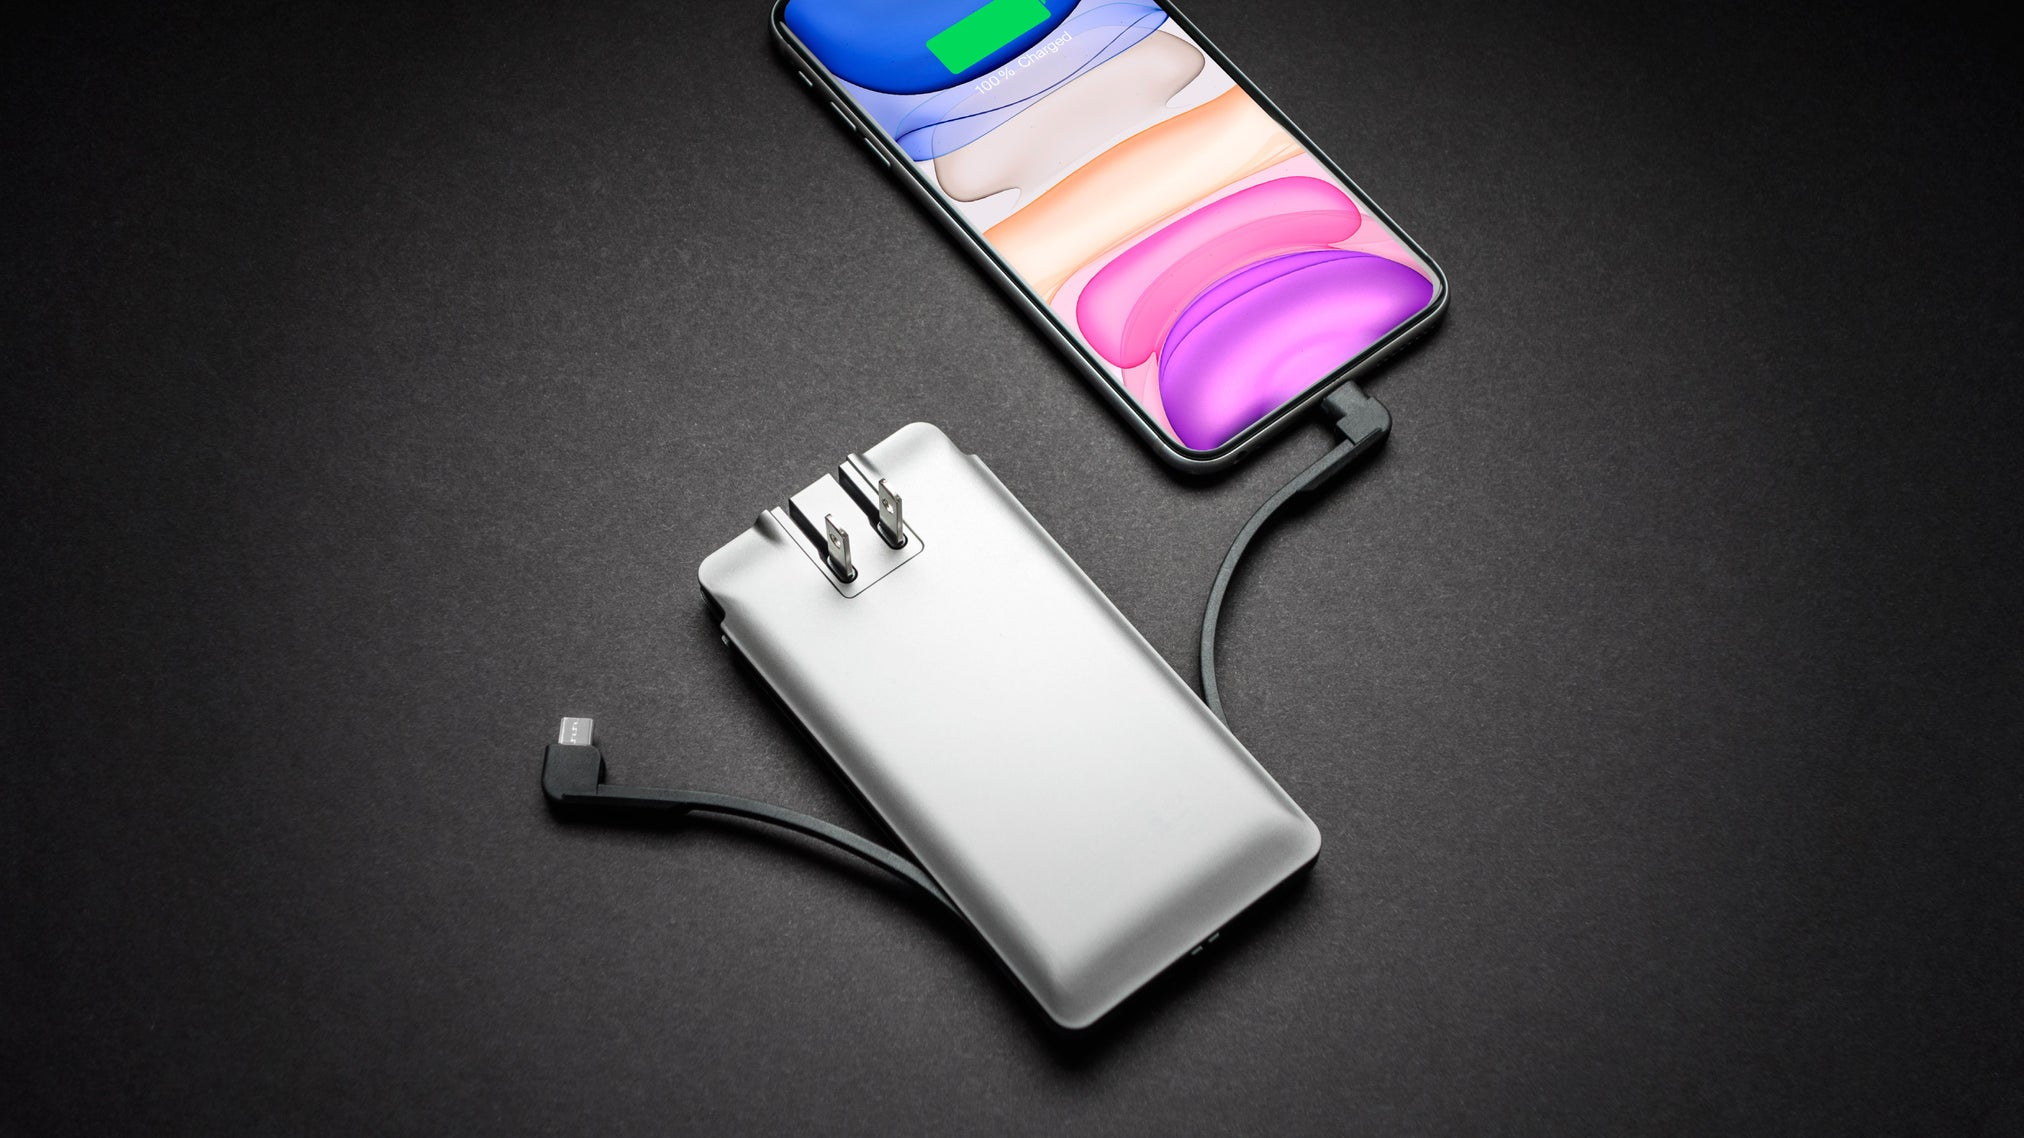 Journey Charger | Portable-Power Bank, Cables & Wall Plug | for Apple iPhone & Smartphones